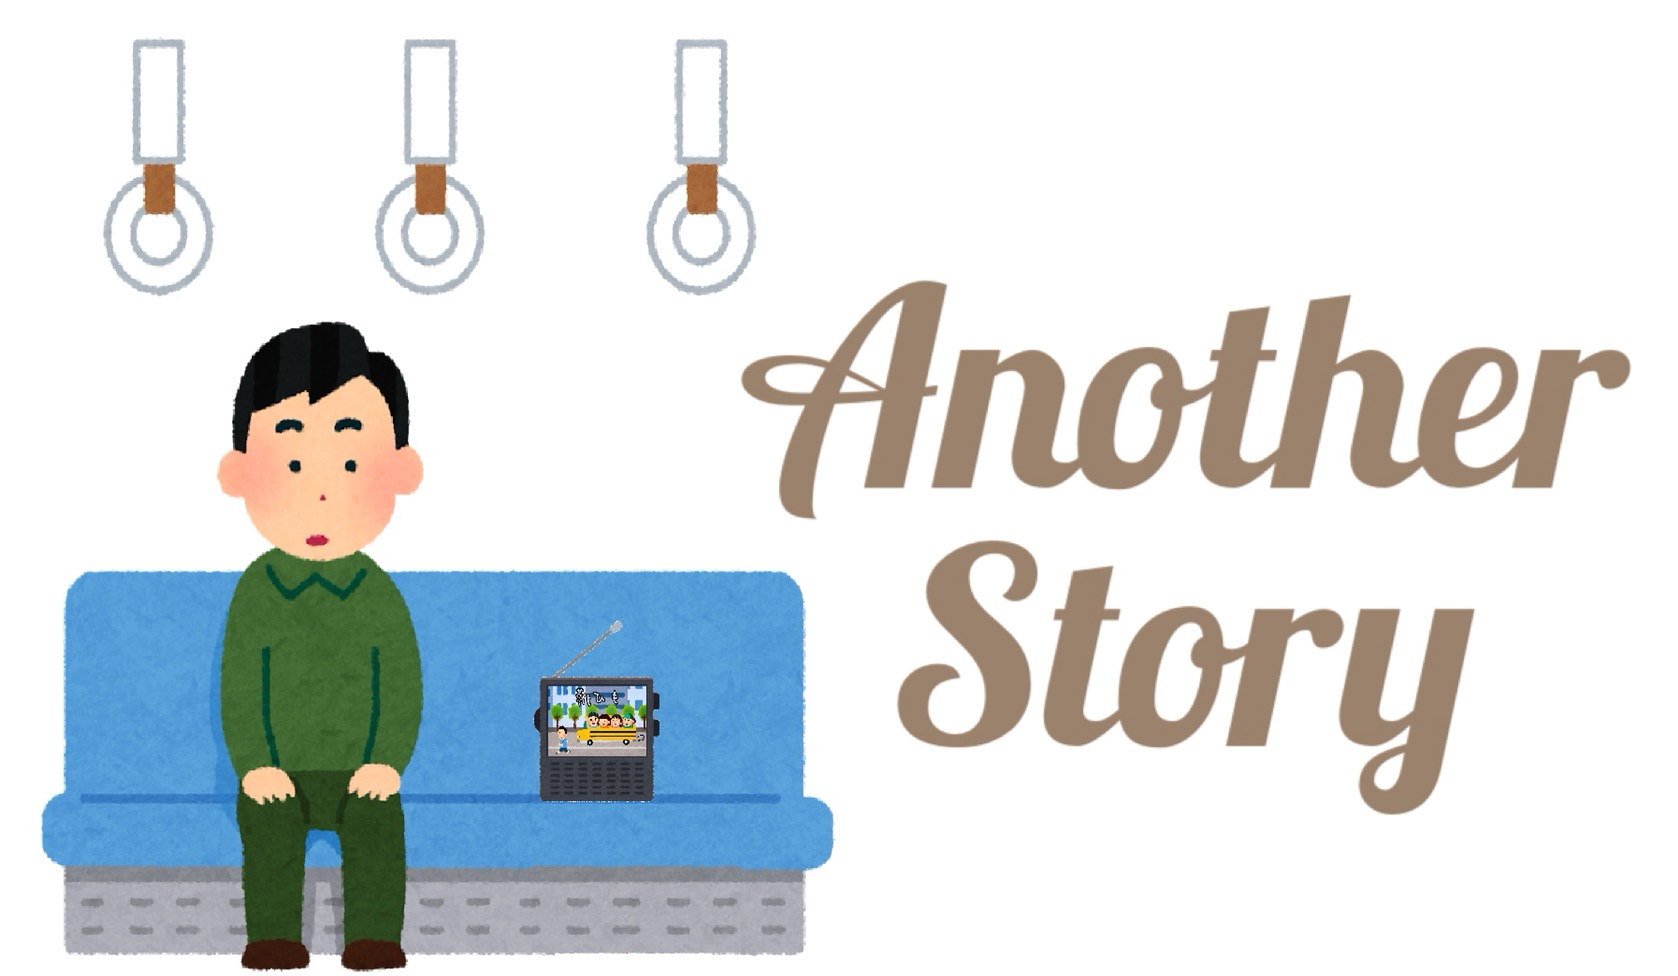 「Another Story」のイメージ